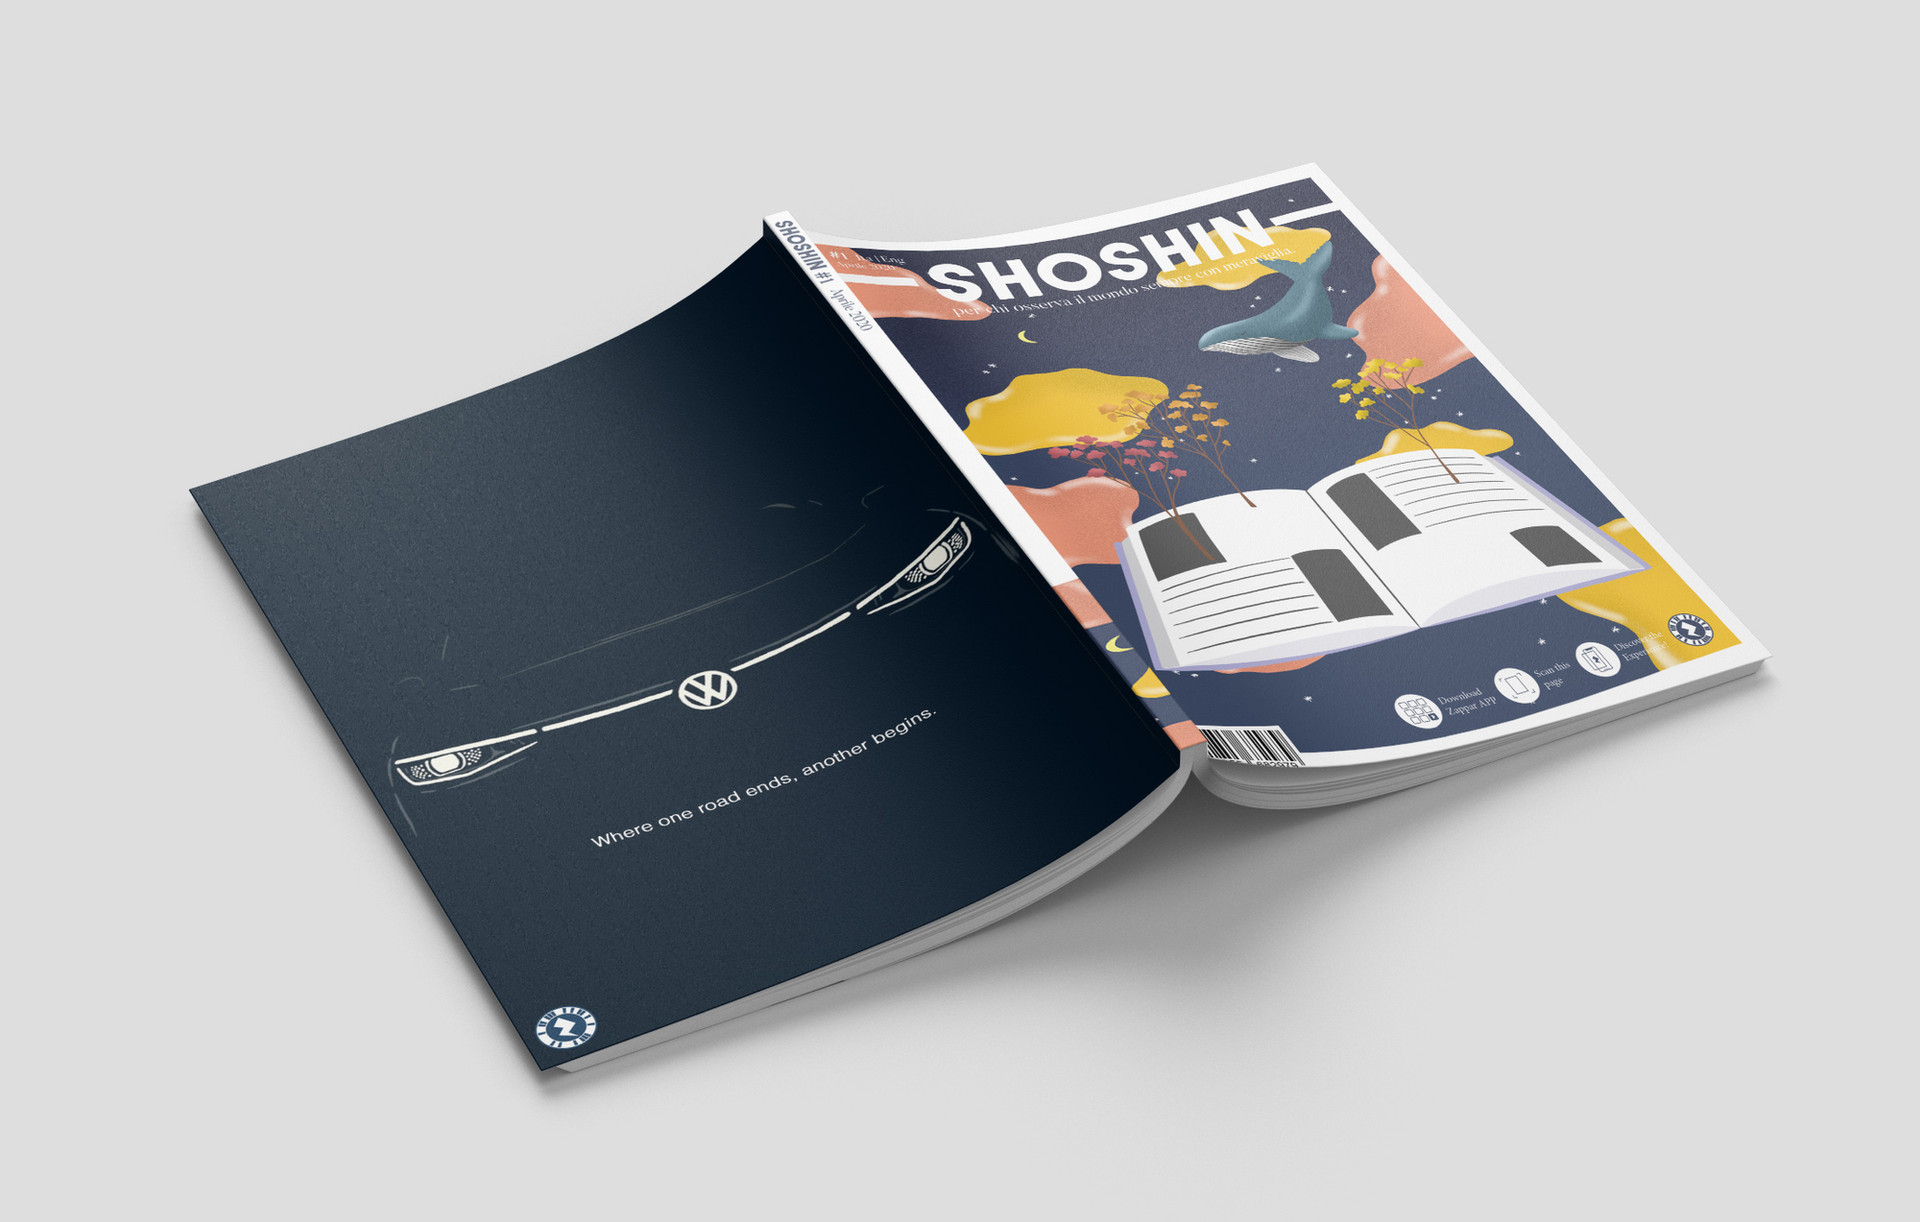 SHOSHIN - Project of a magazine between paper, digital and augmented reality